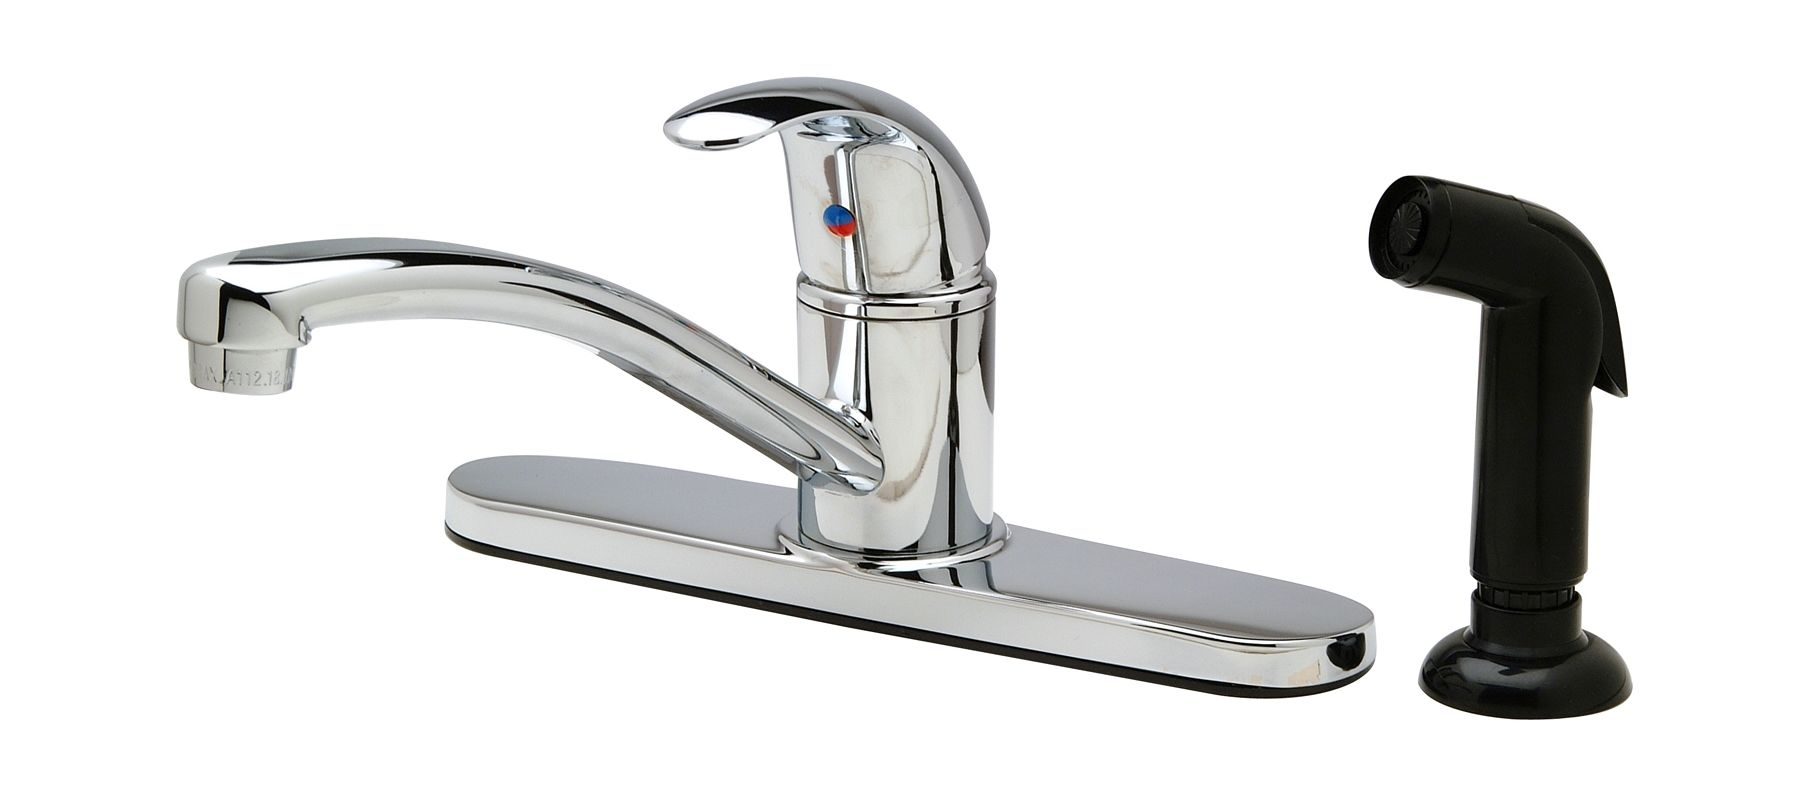 100 Kitchen Faucets Com Glacier Bay Single Handle Standard Kitchen Faucet In Stainless